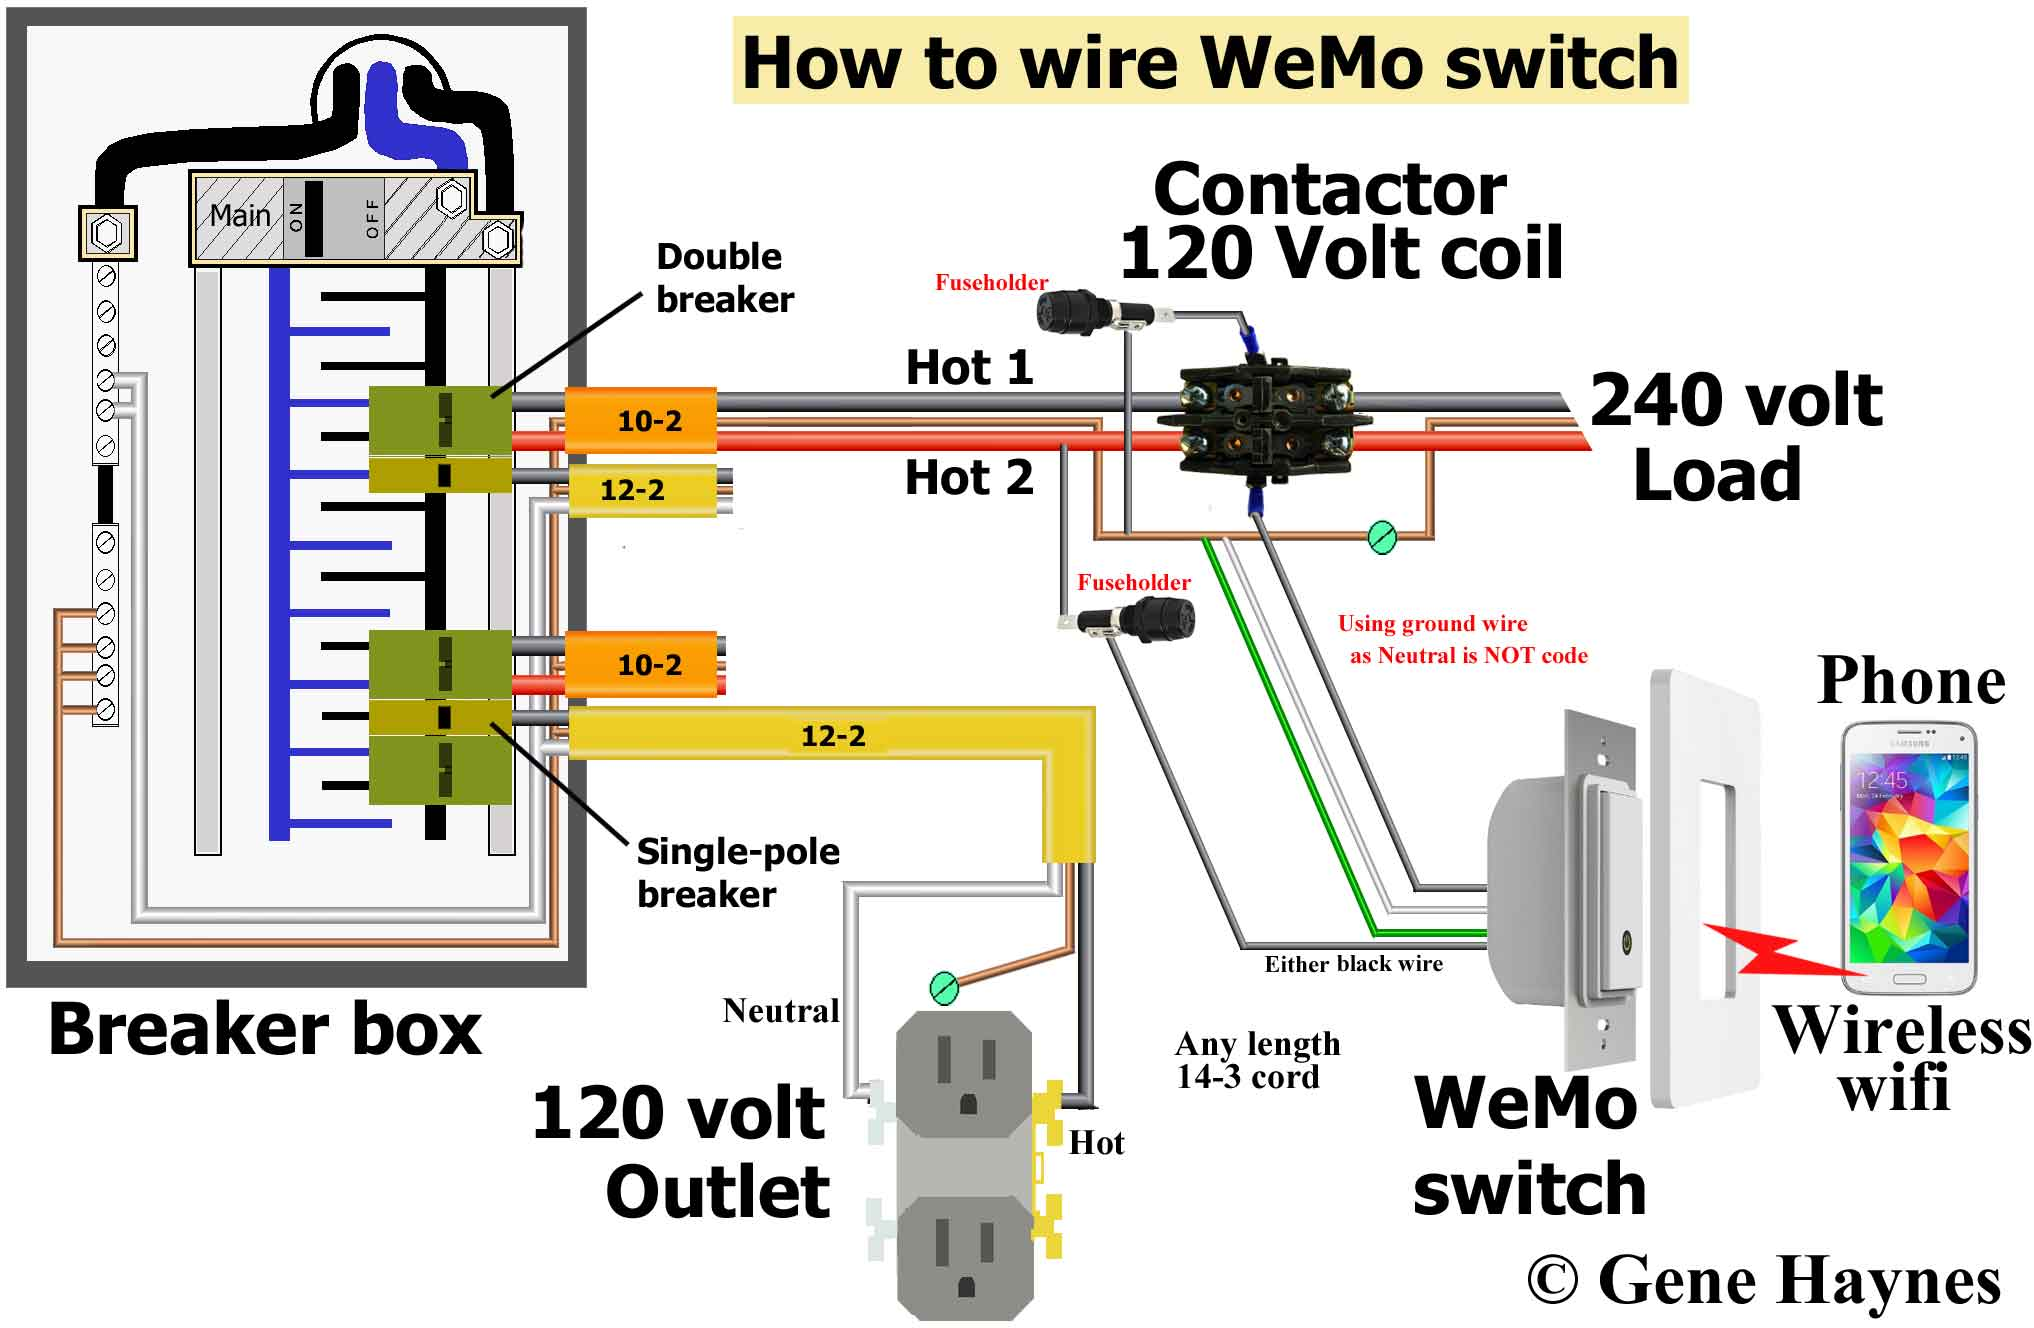 Skf Wiring Diagram For Professional Wemo Diagrams Rh 38 Shareplm De Schematic Induction Heater